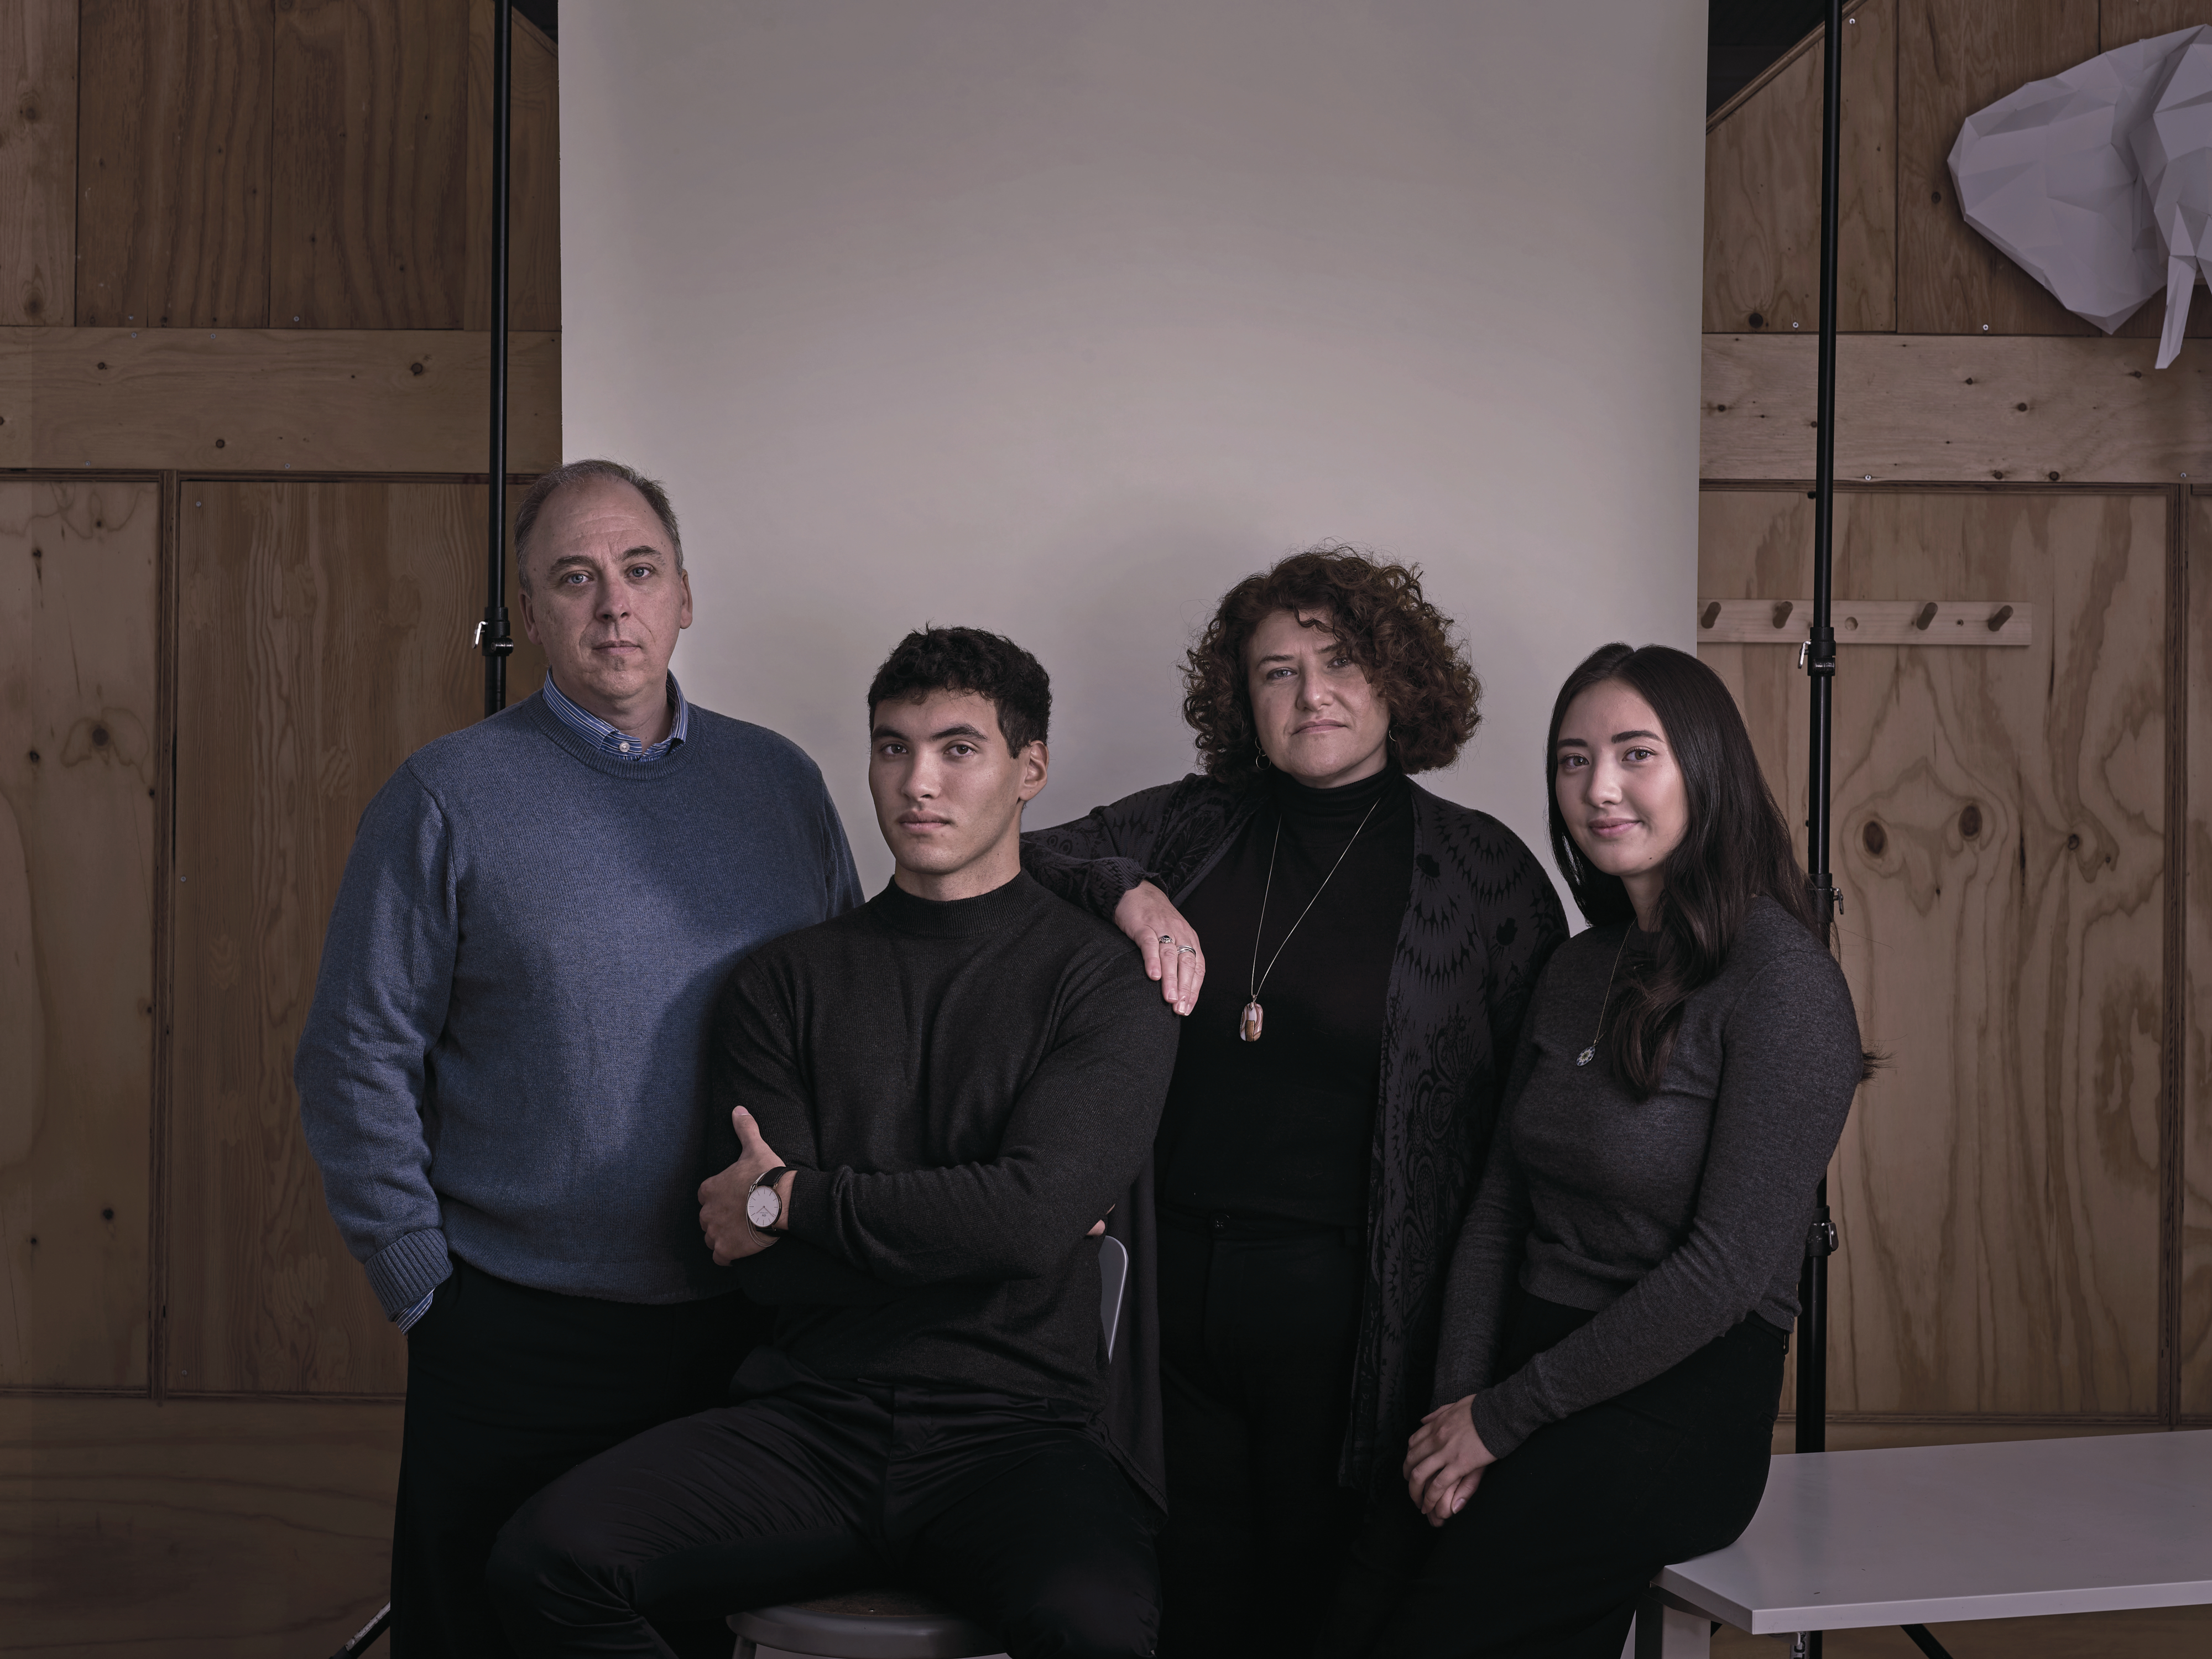 Thomas with his stepfather, Jeff, mother, Roz and sister, Christina; the family is weary but they still have a long fight ahead, even if the SCC rules in his favour. (Photograph by Clay Stang)